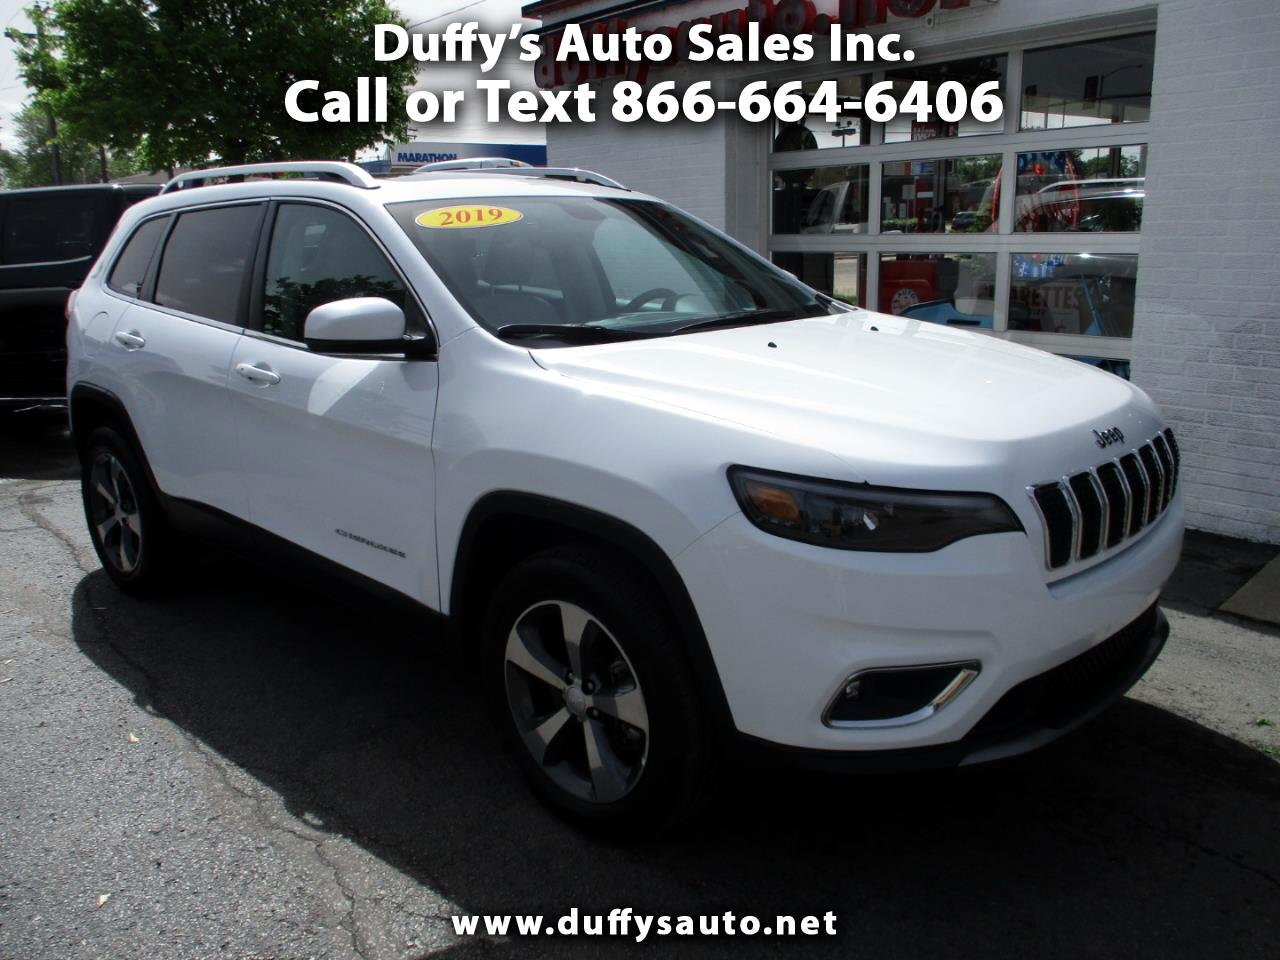 2019 Jeep Cherokee Limited 4x4